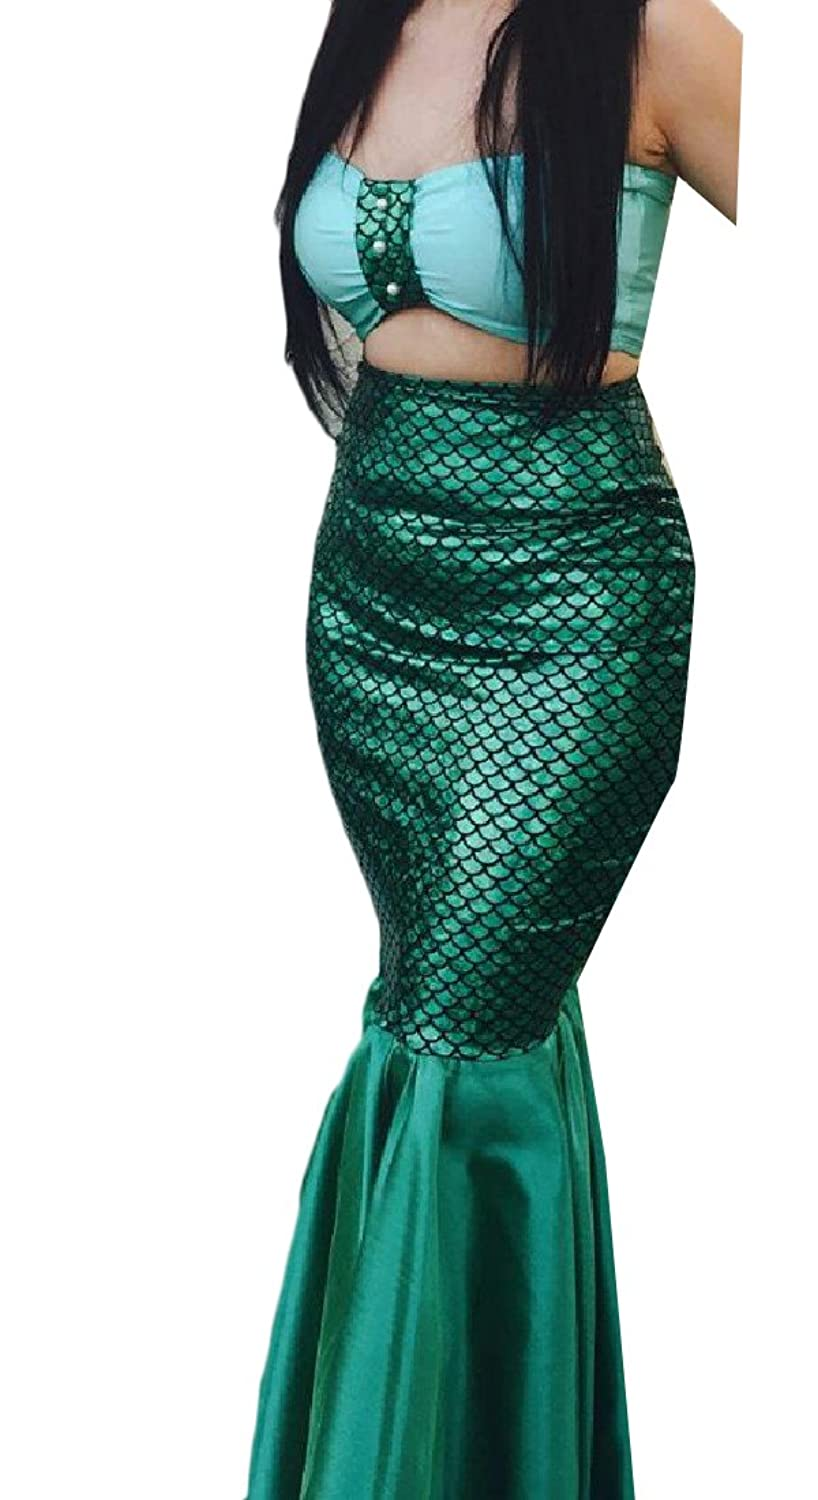 Abetteric Women Fishtail Pure Color Fish Scales Stitching Slim Mermaid Skirt